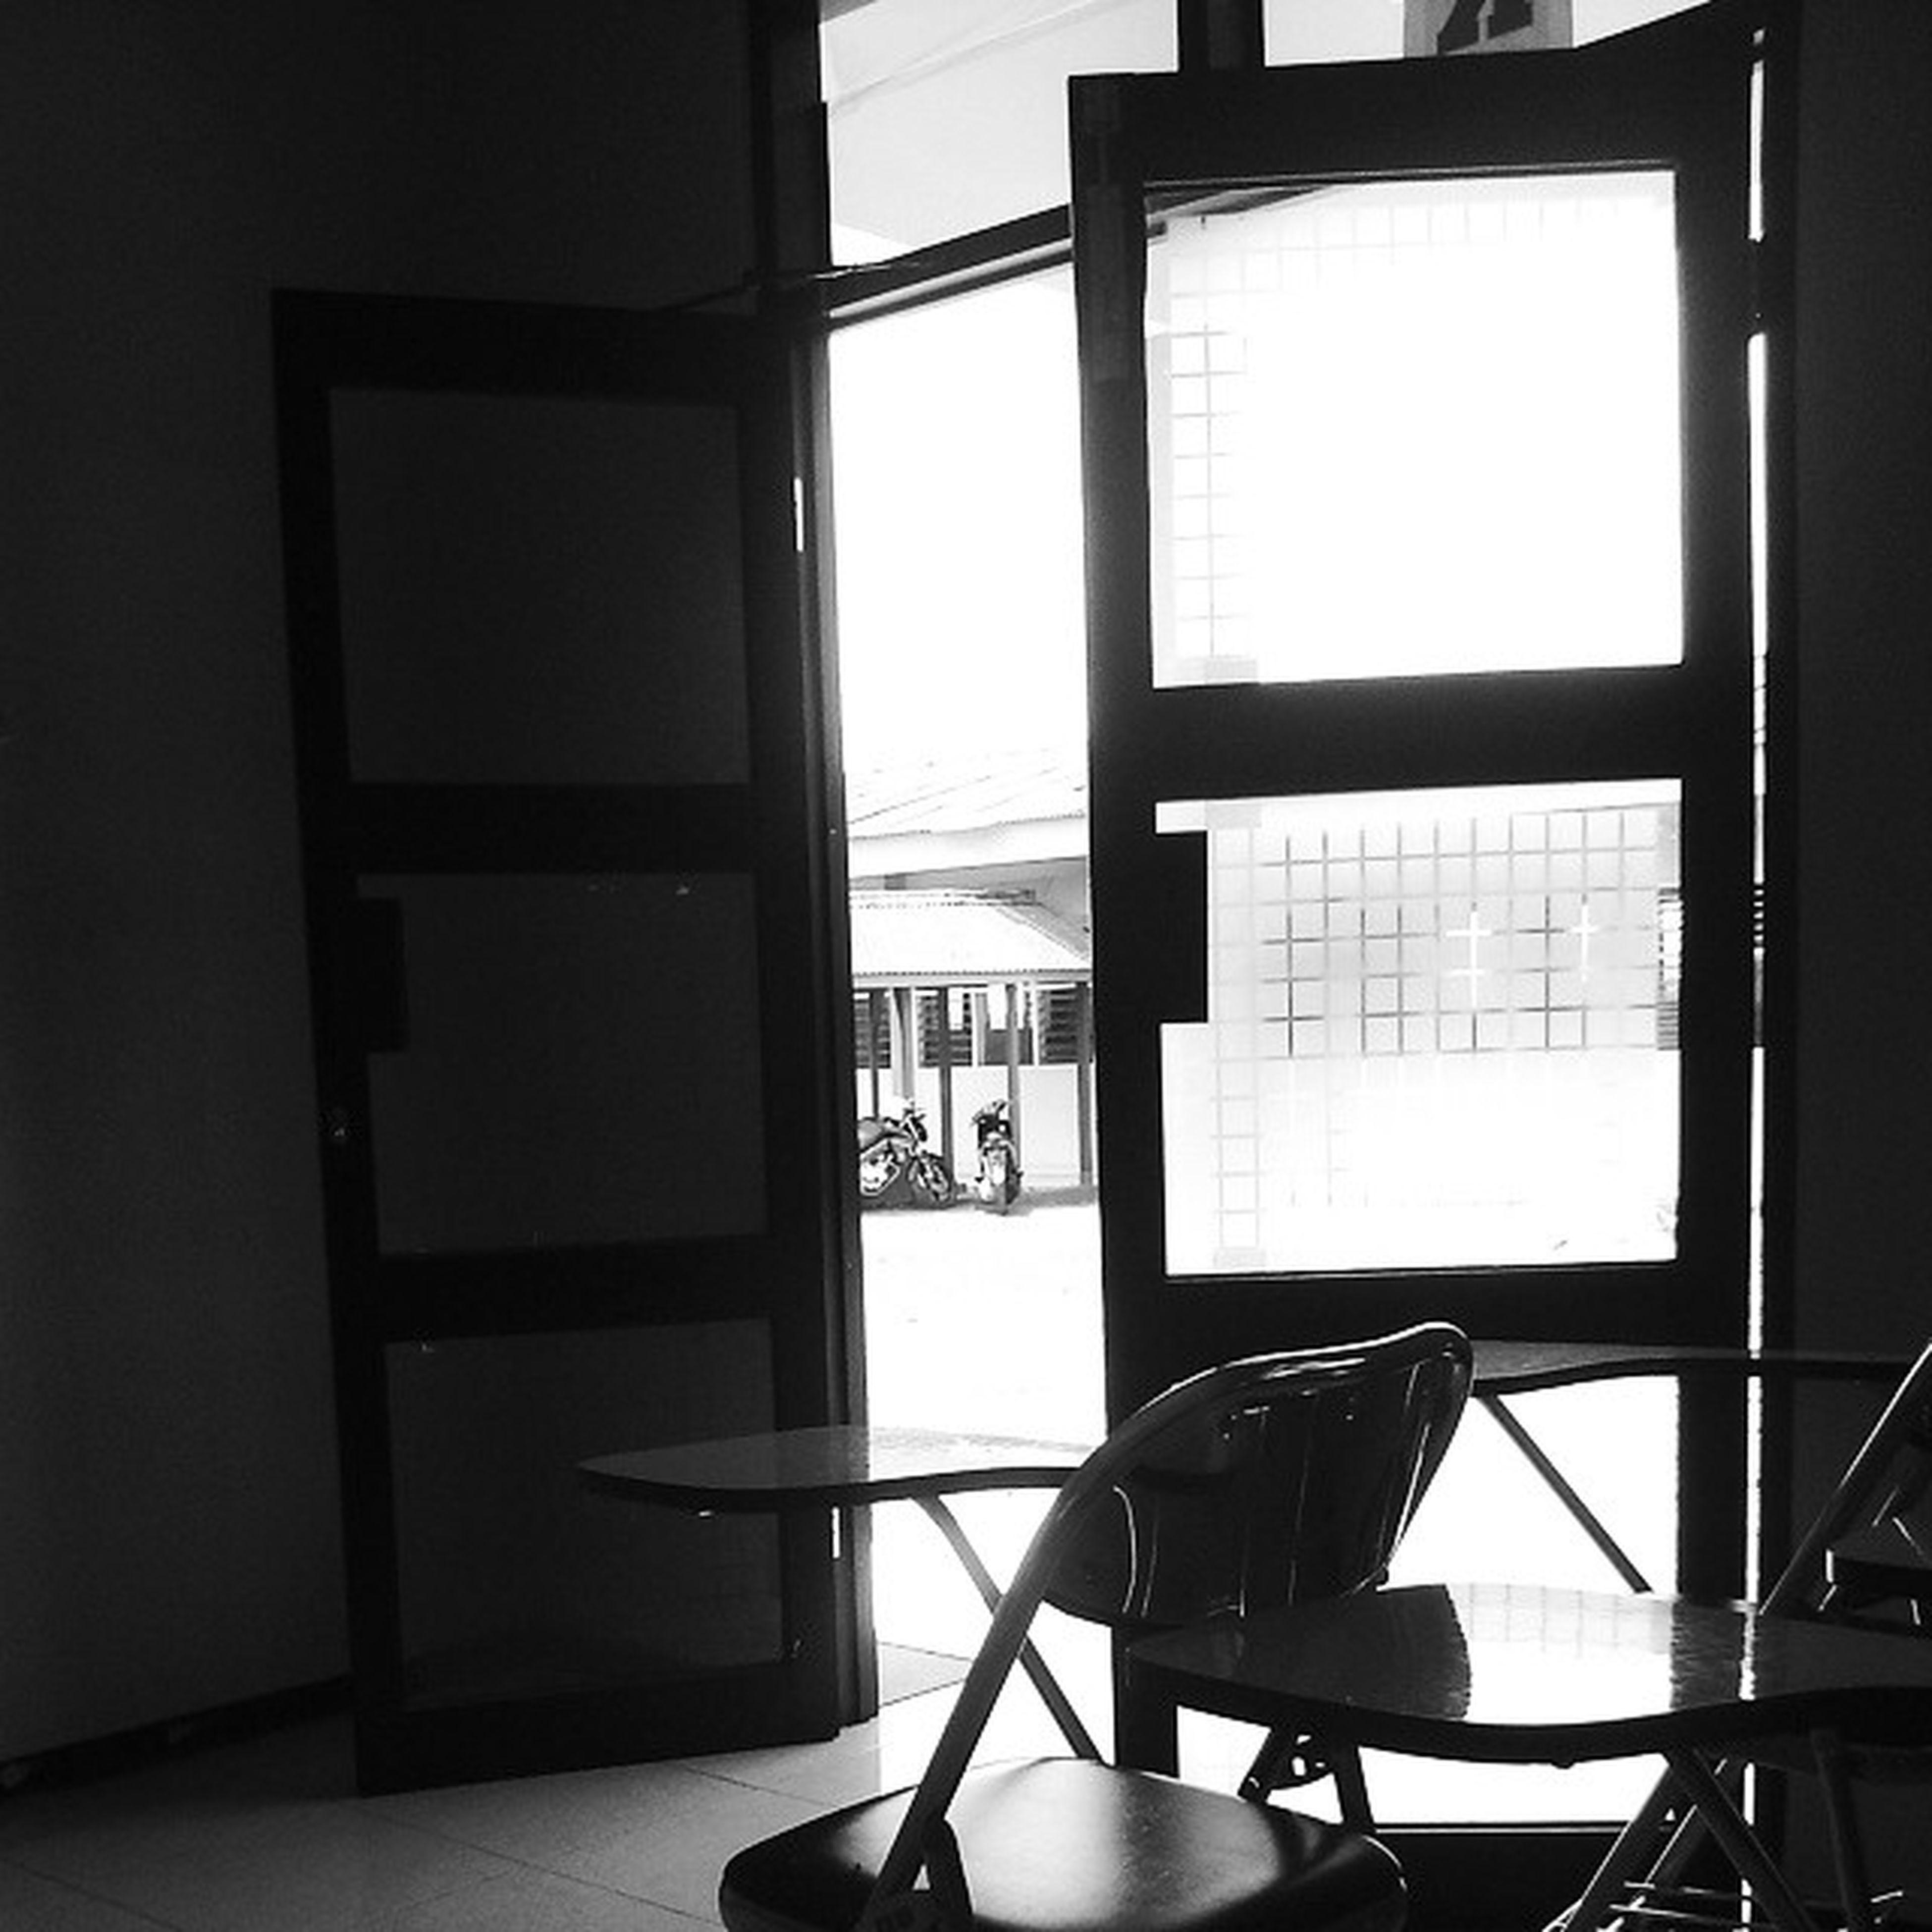 indoors, window, architecture, built structure, glass - material, transparent, home interior, day, chair, interior, no people, absence, building, wall, sunlight, table, modern, railing, building exterior, empty